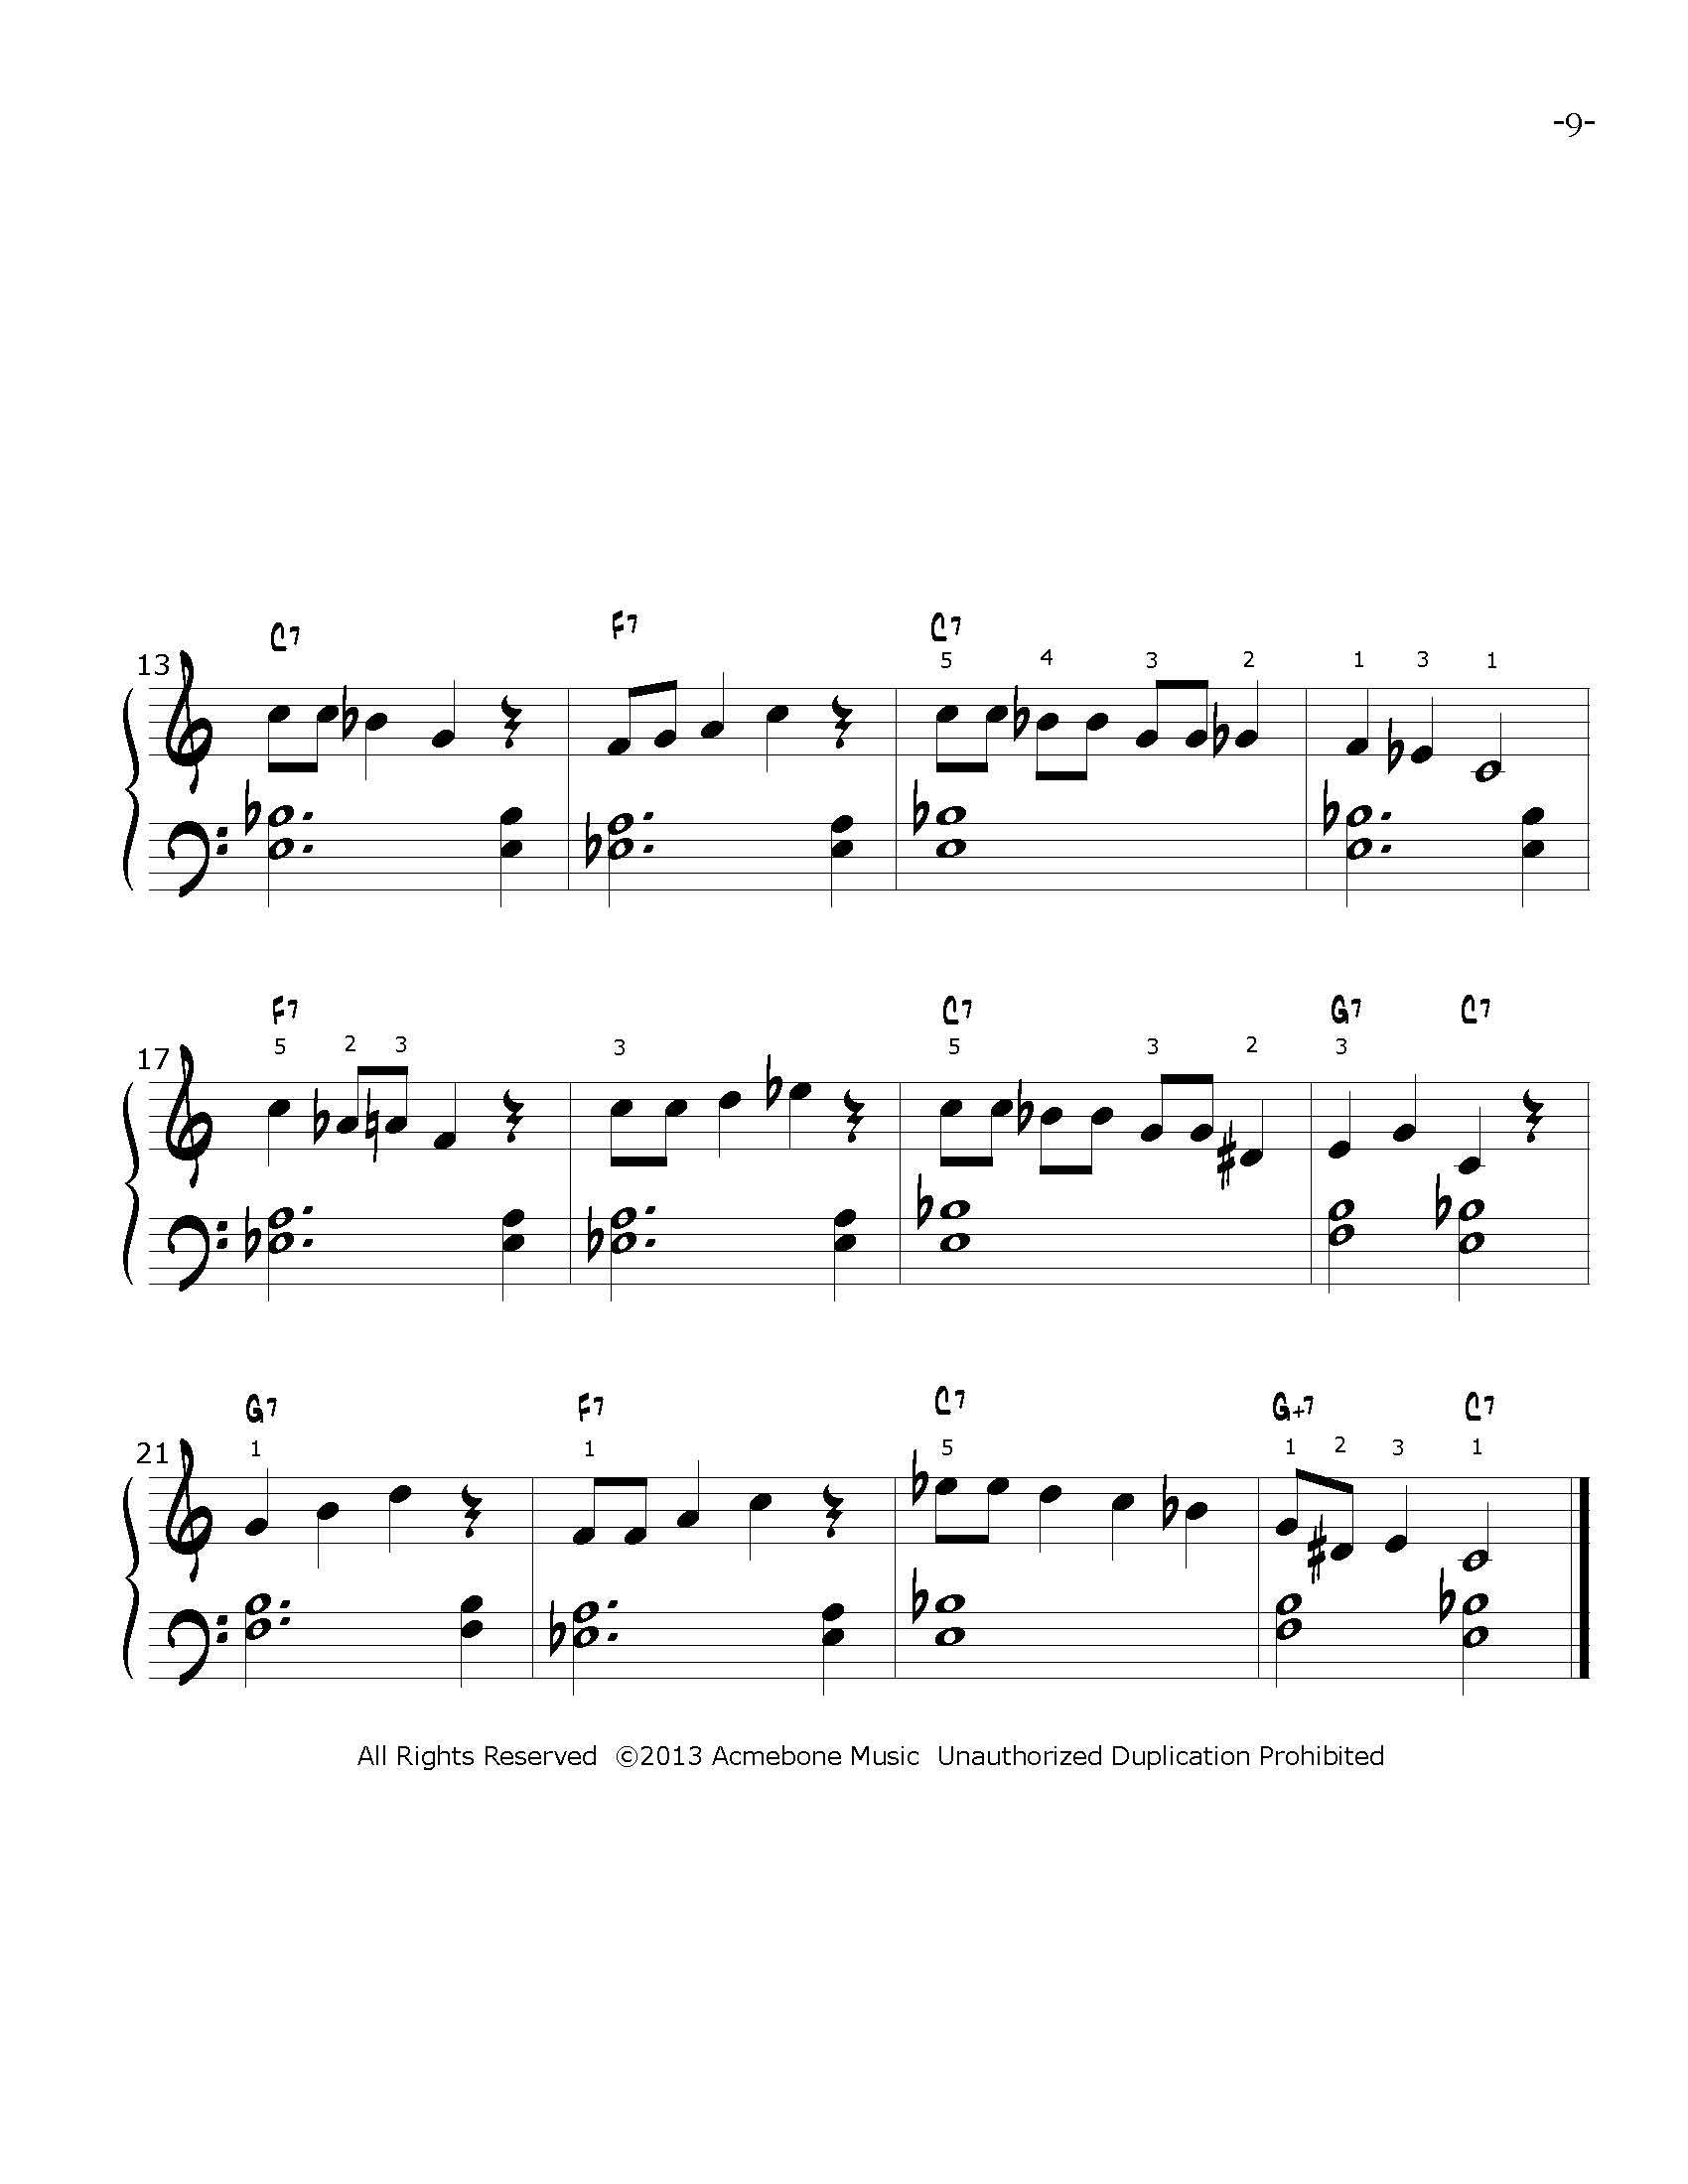 Progressive Jazz Etudes for Piano bk1 for web_Page_10.jpg